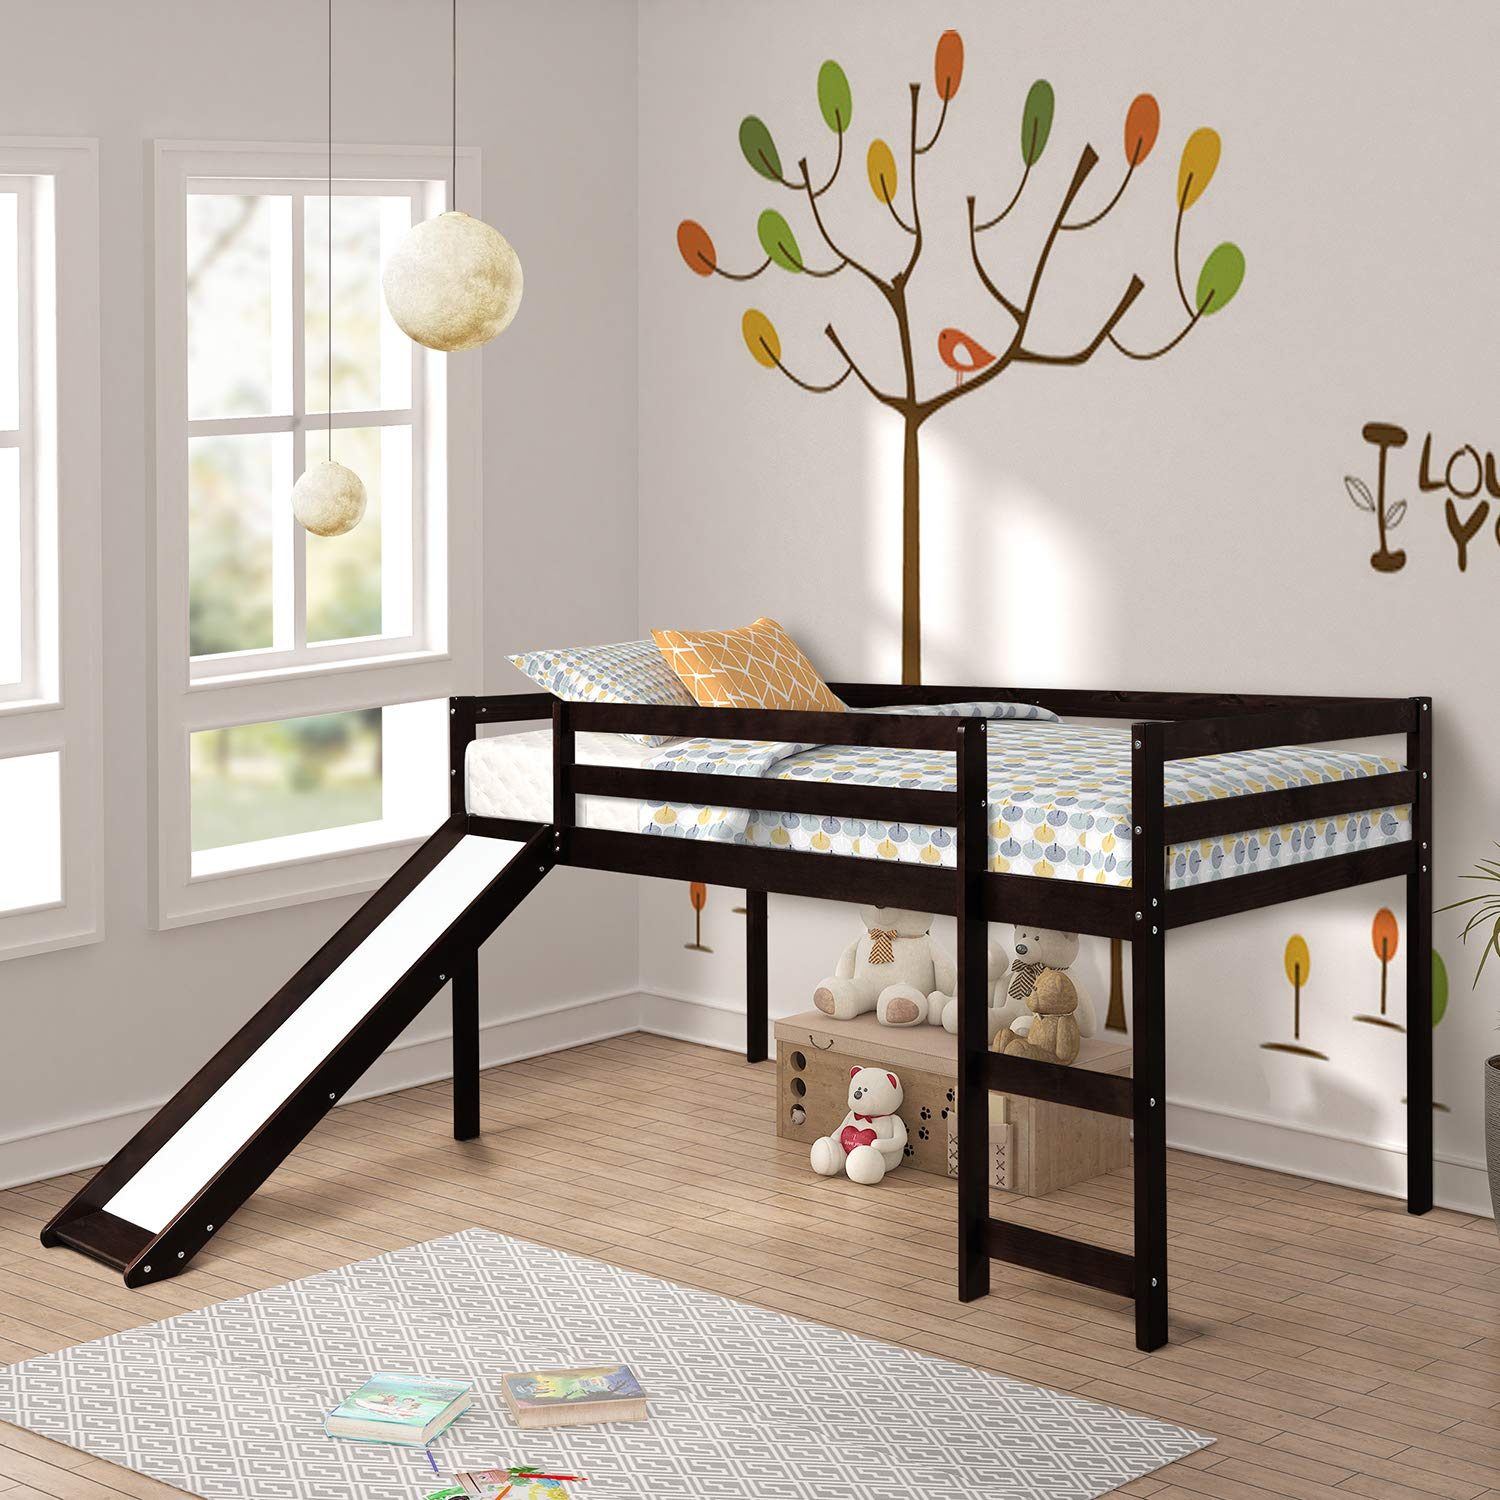 Loft Bed, Rockjame Twin Wood Kids Bed with Slide Multifunctional Design for Boys, Girls and Young Teens Espresso